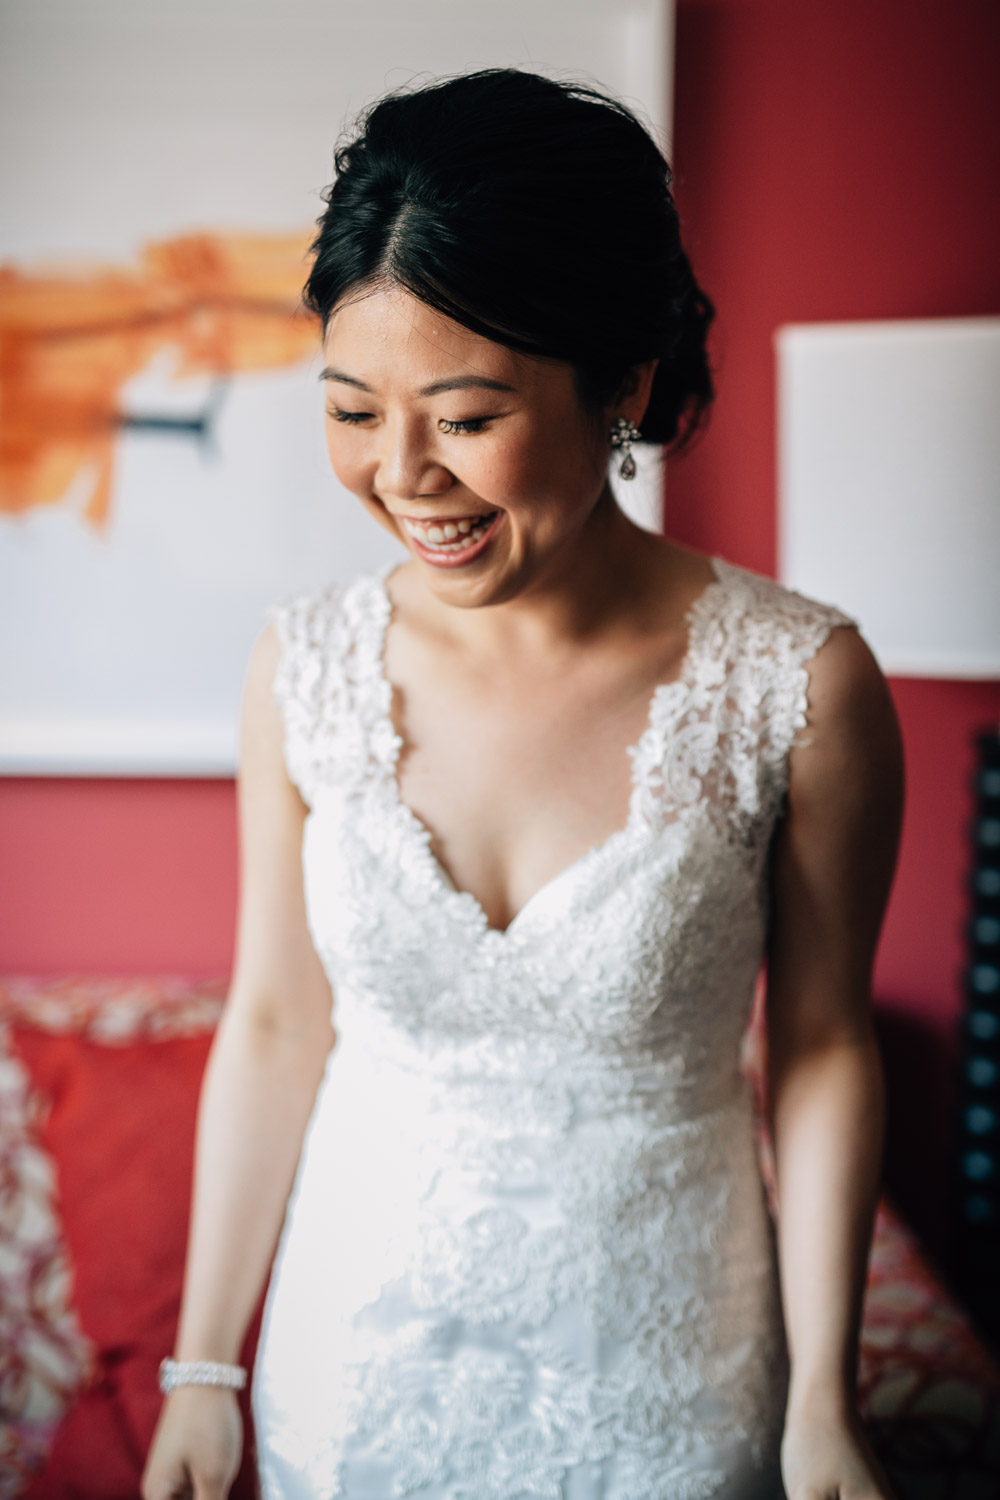 bride candid vsco opus hotel yaletown vancouver bc wedding photographer